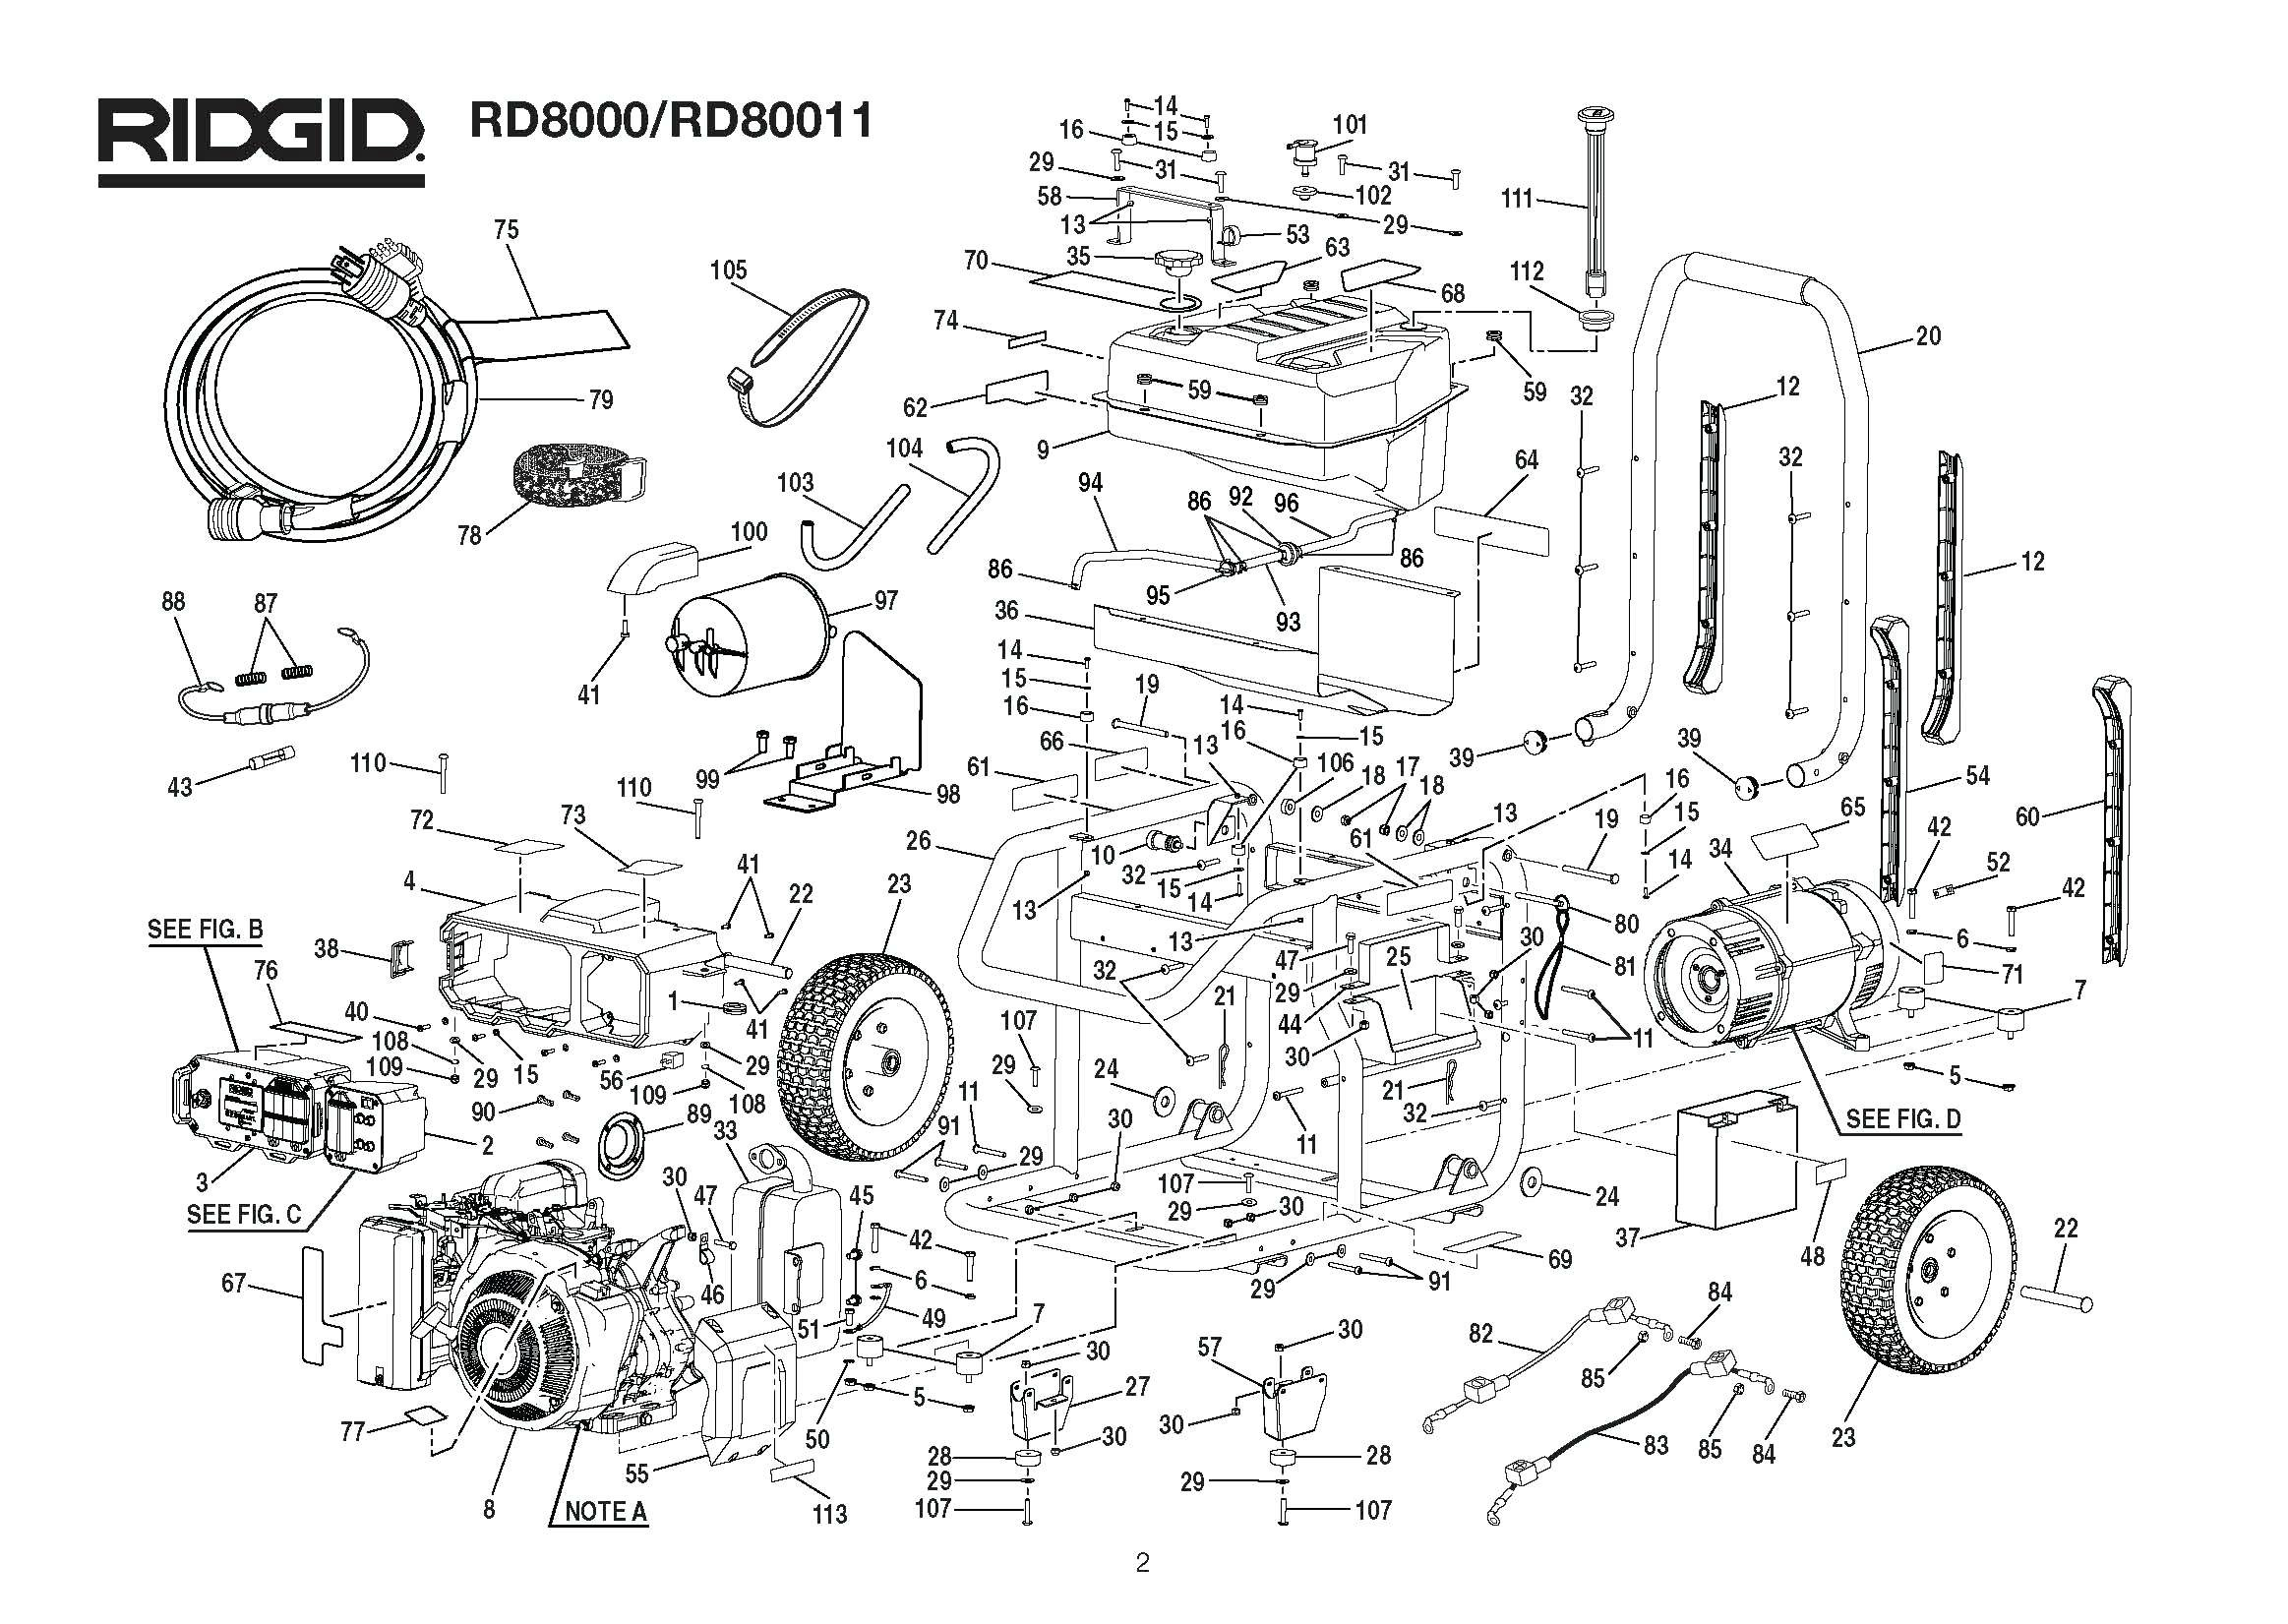 1996 22 subaru engine diagram